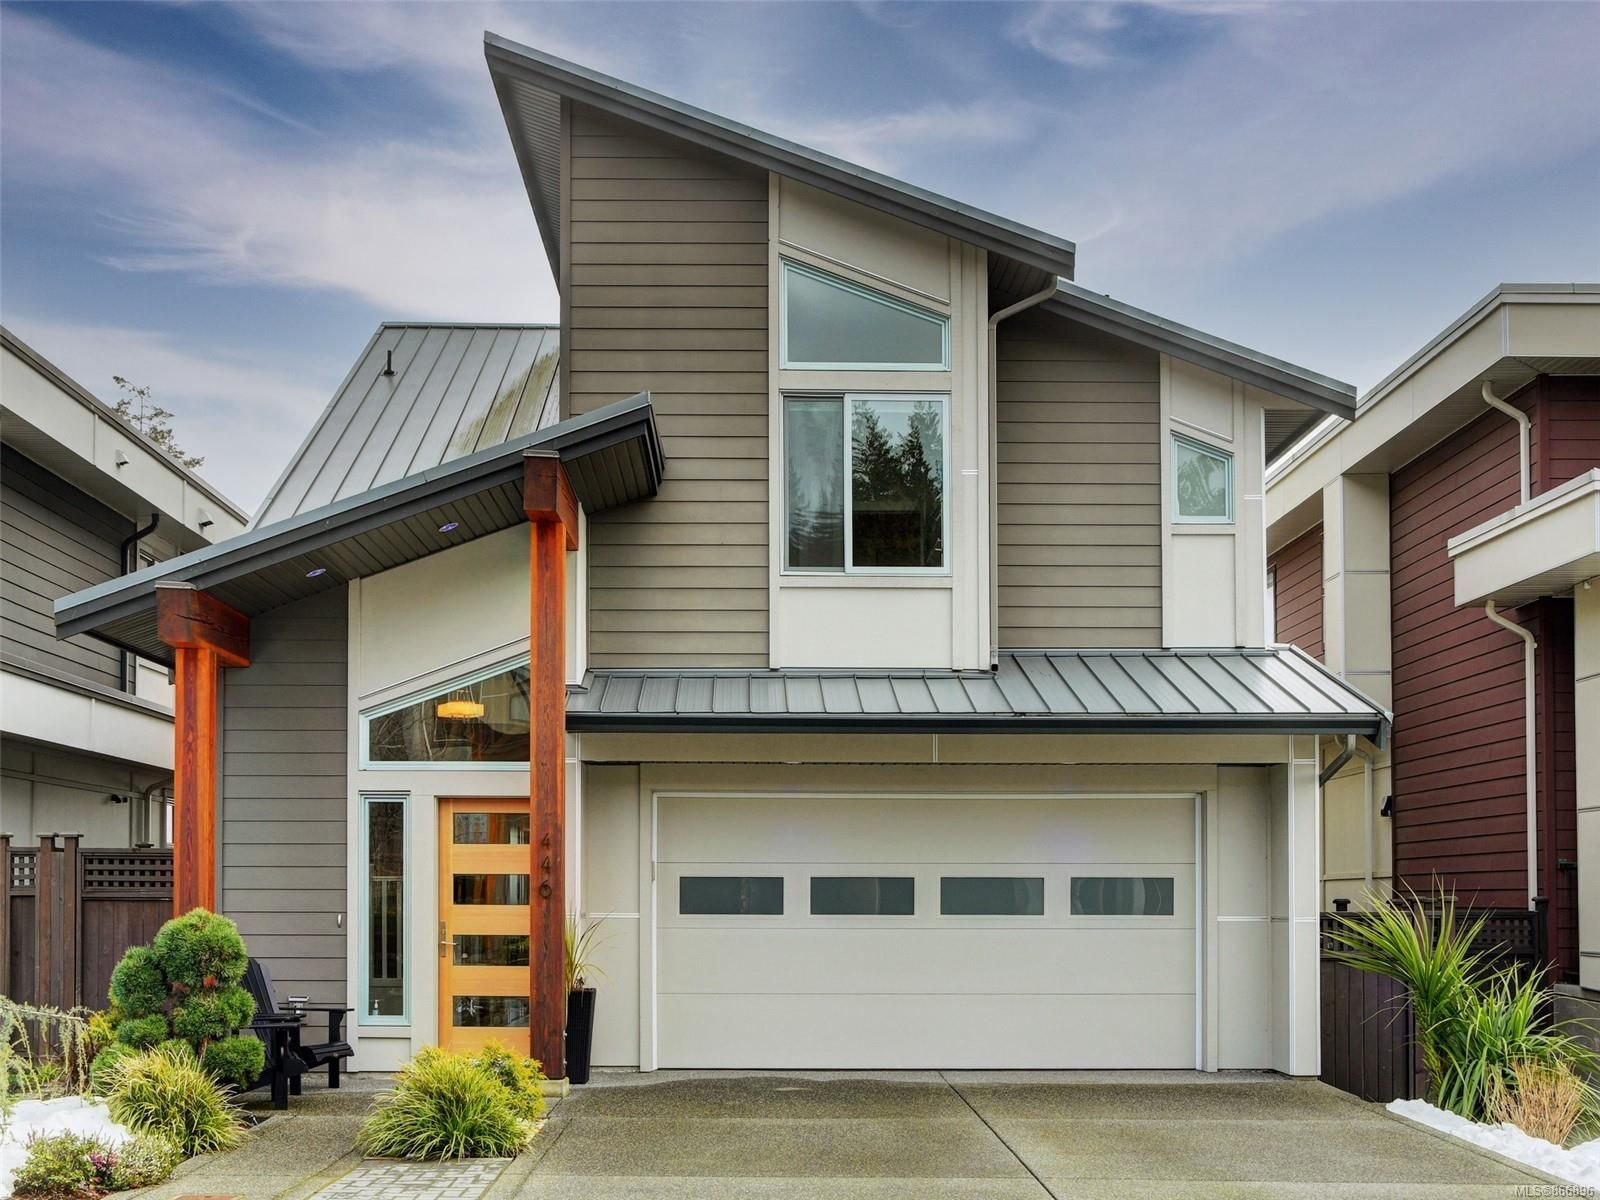 Main Photo: 446 Regency Pl in : Co Royal Bay House for sale (Colwood)  : MLS®# 866896